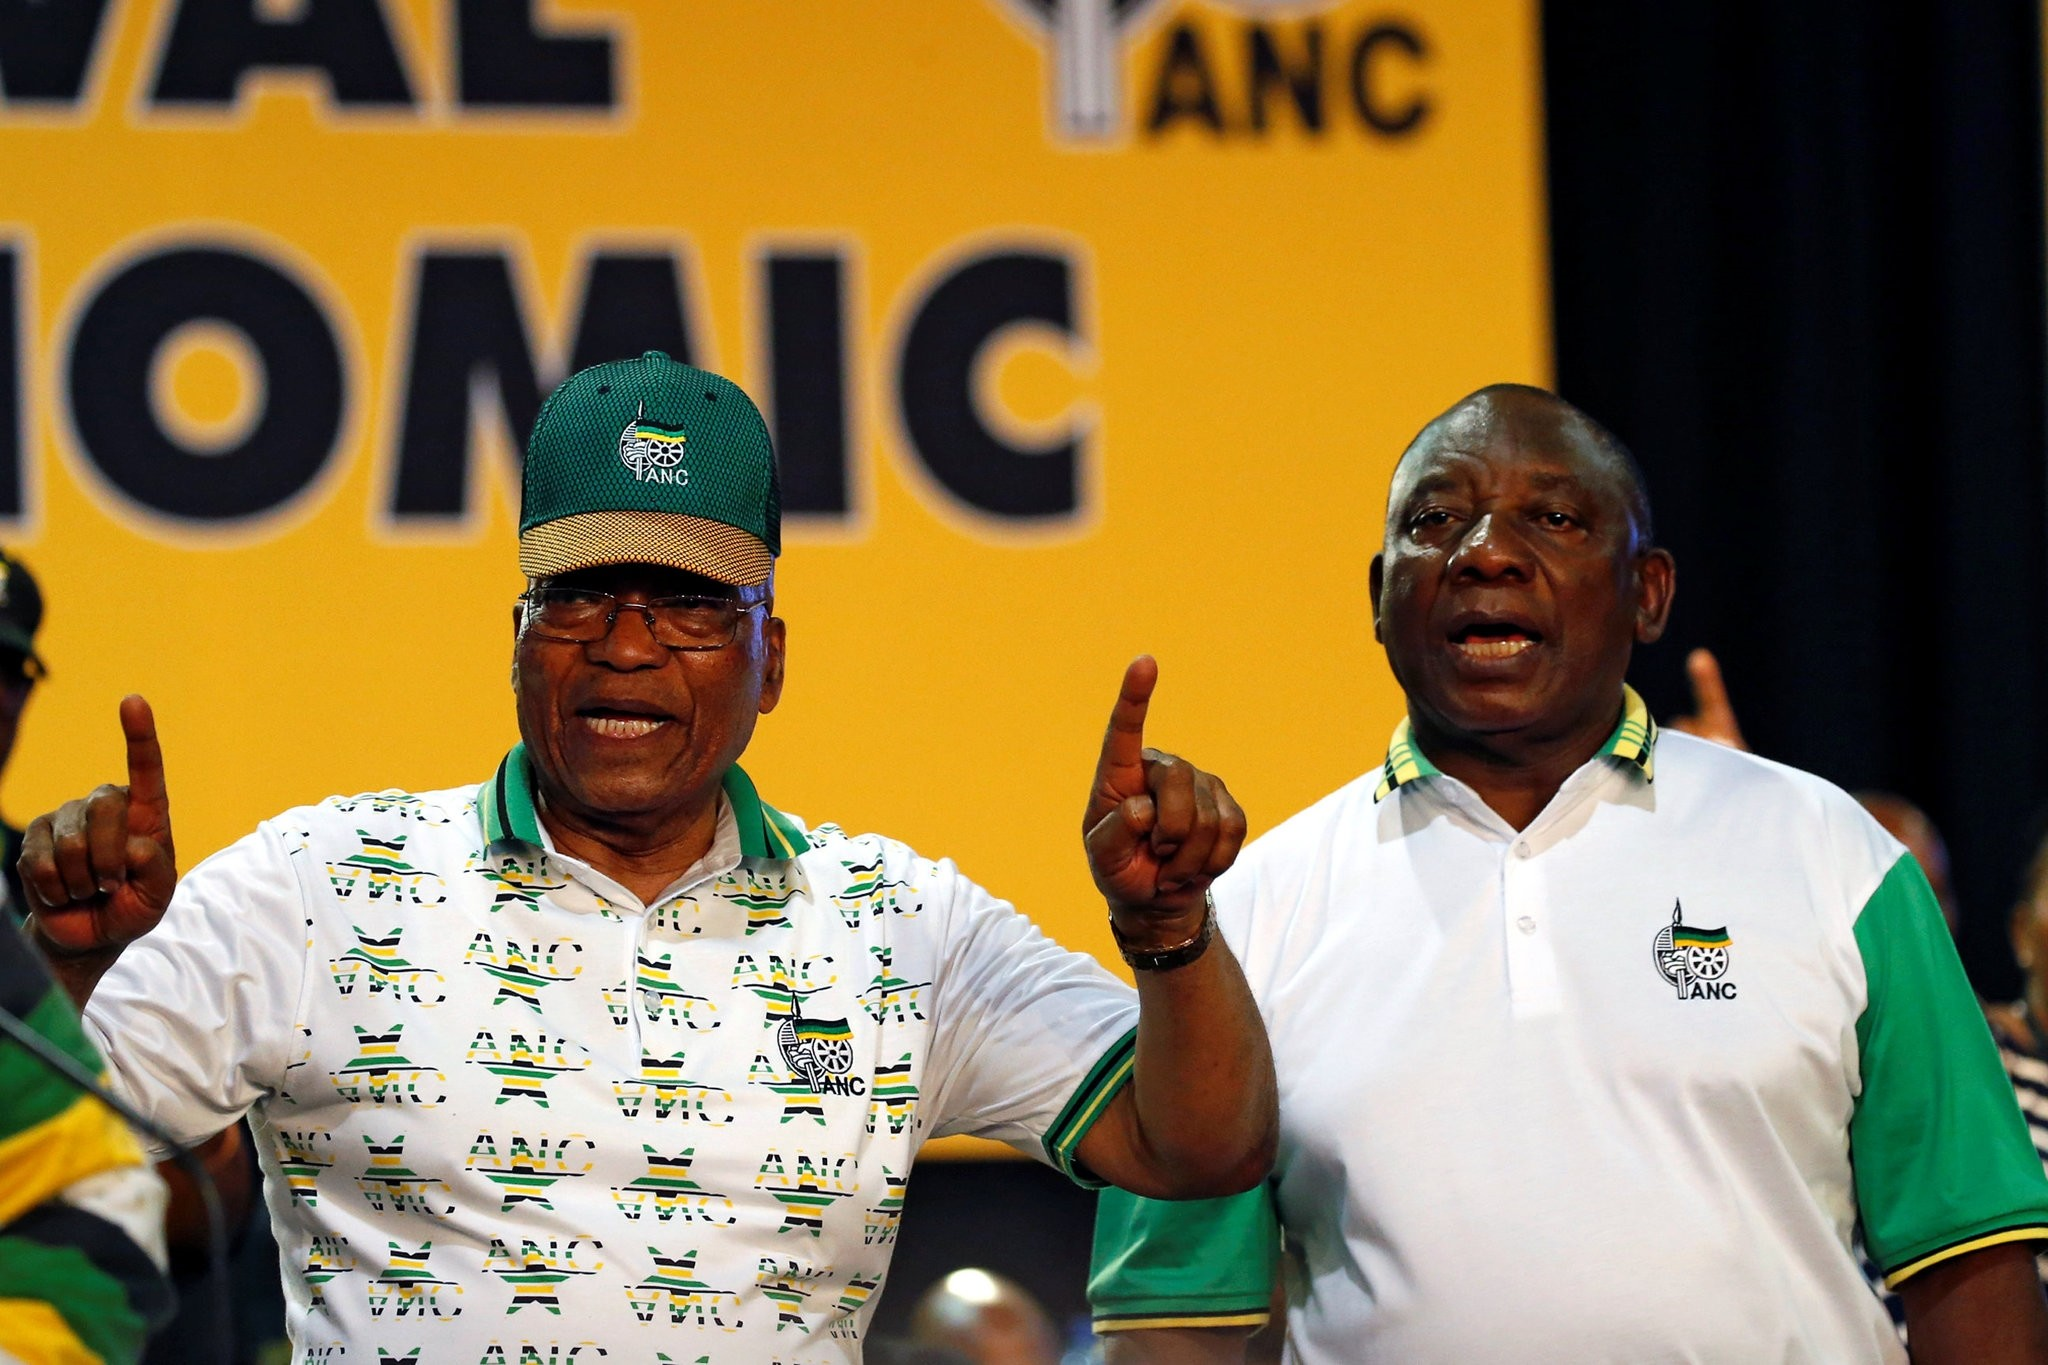 South Africa's President Jacob Zuma sings next to newly elected president of the ANC Cyril Ramaphosa during the ruling African National Congress (ANC) at the Nasrec Expo Centre in Johannesburg, South Africa December 18, 2017. (REUTERS Photo)